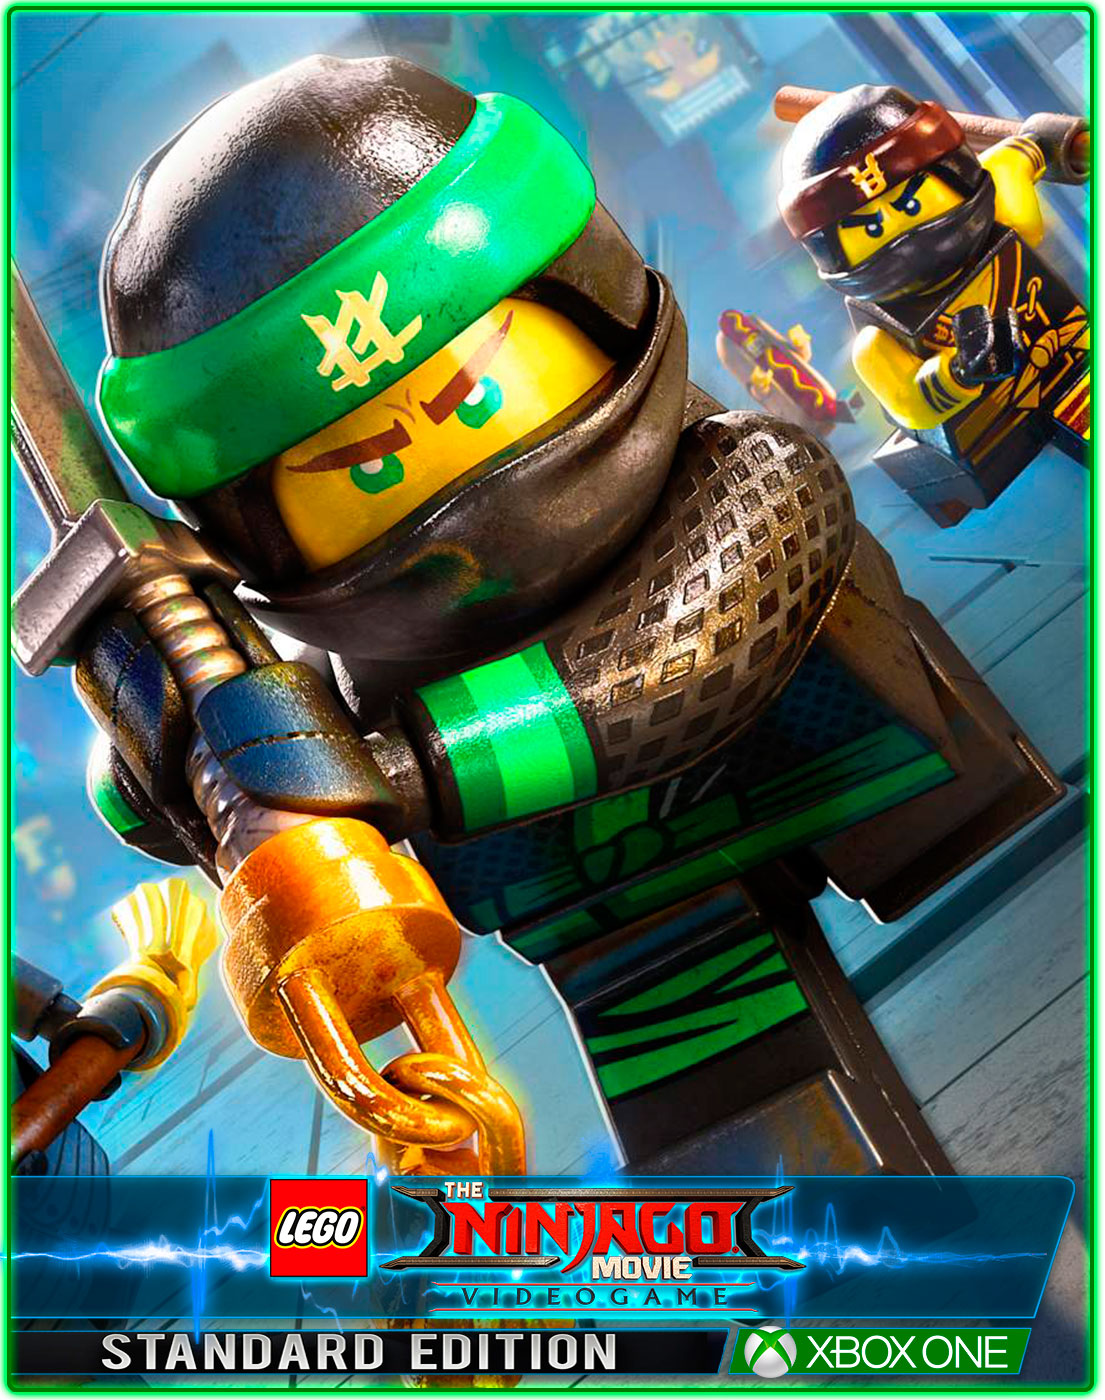 Buy LEGO Ninjago Movie Video Game(XBOX ONE) and download